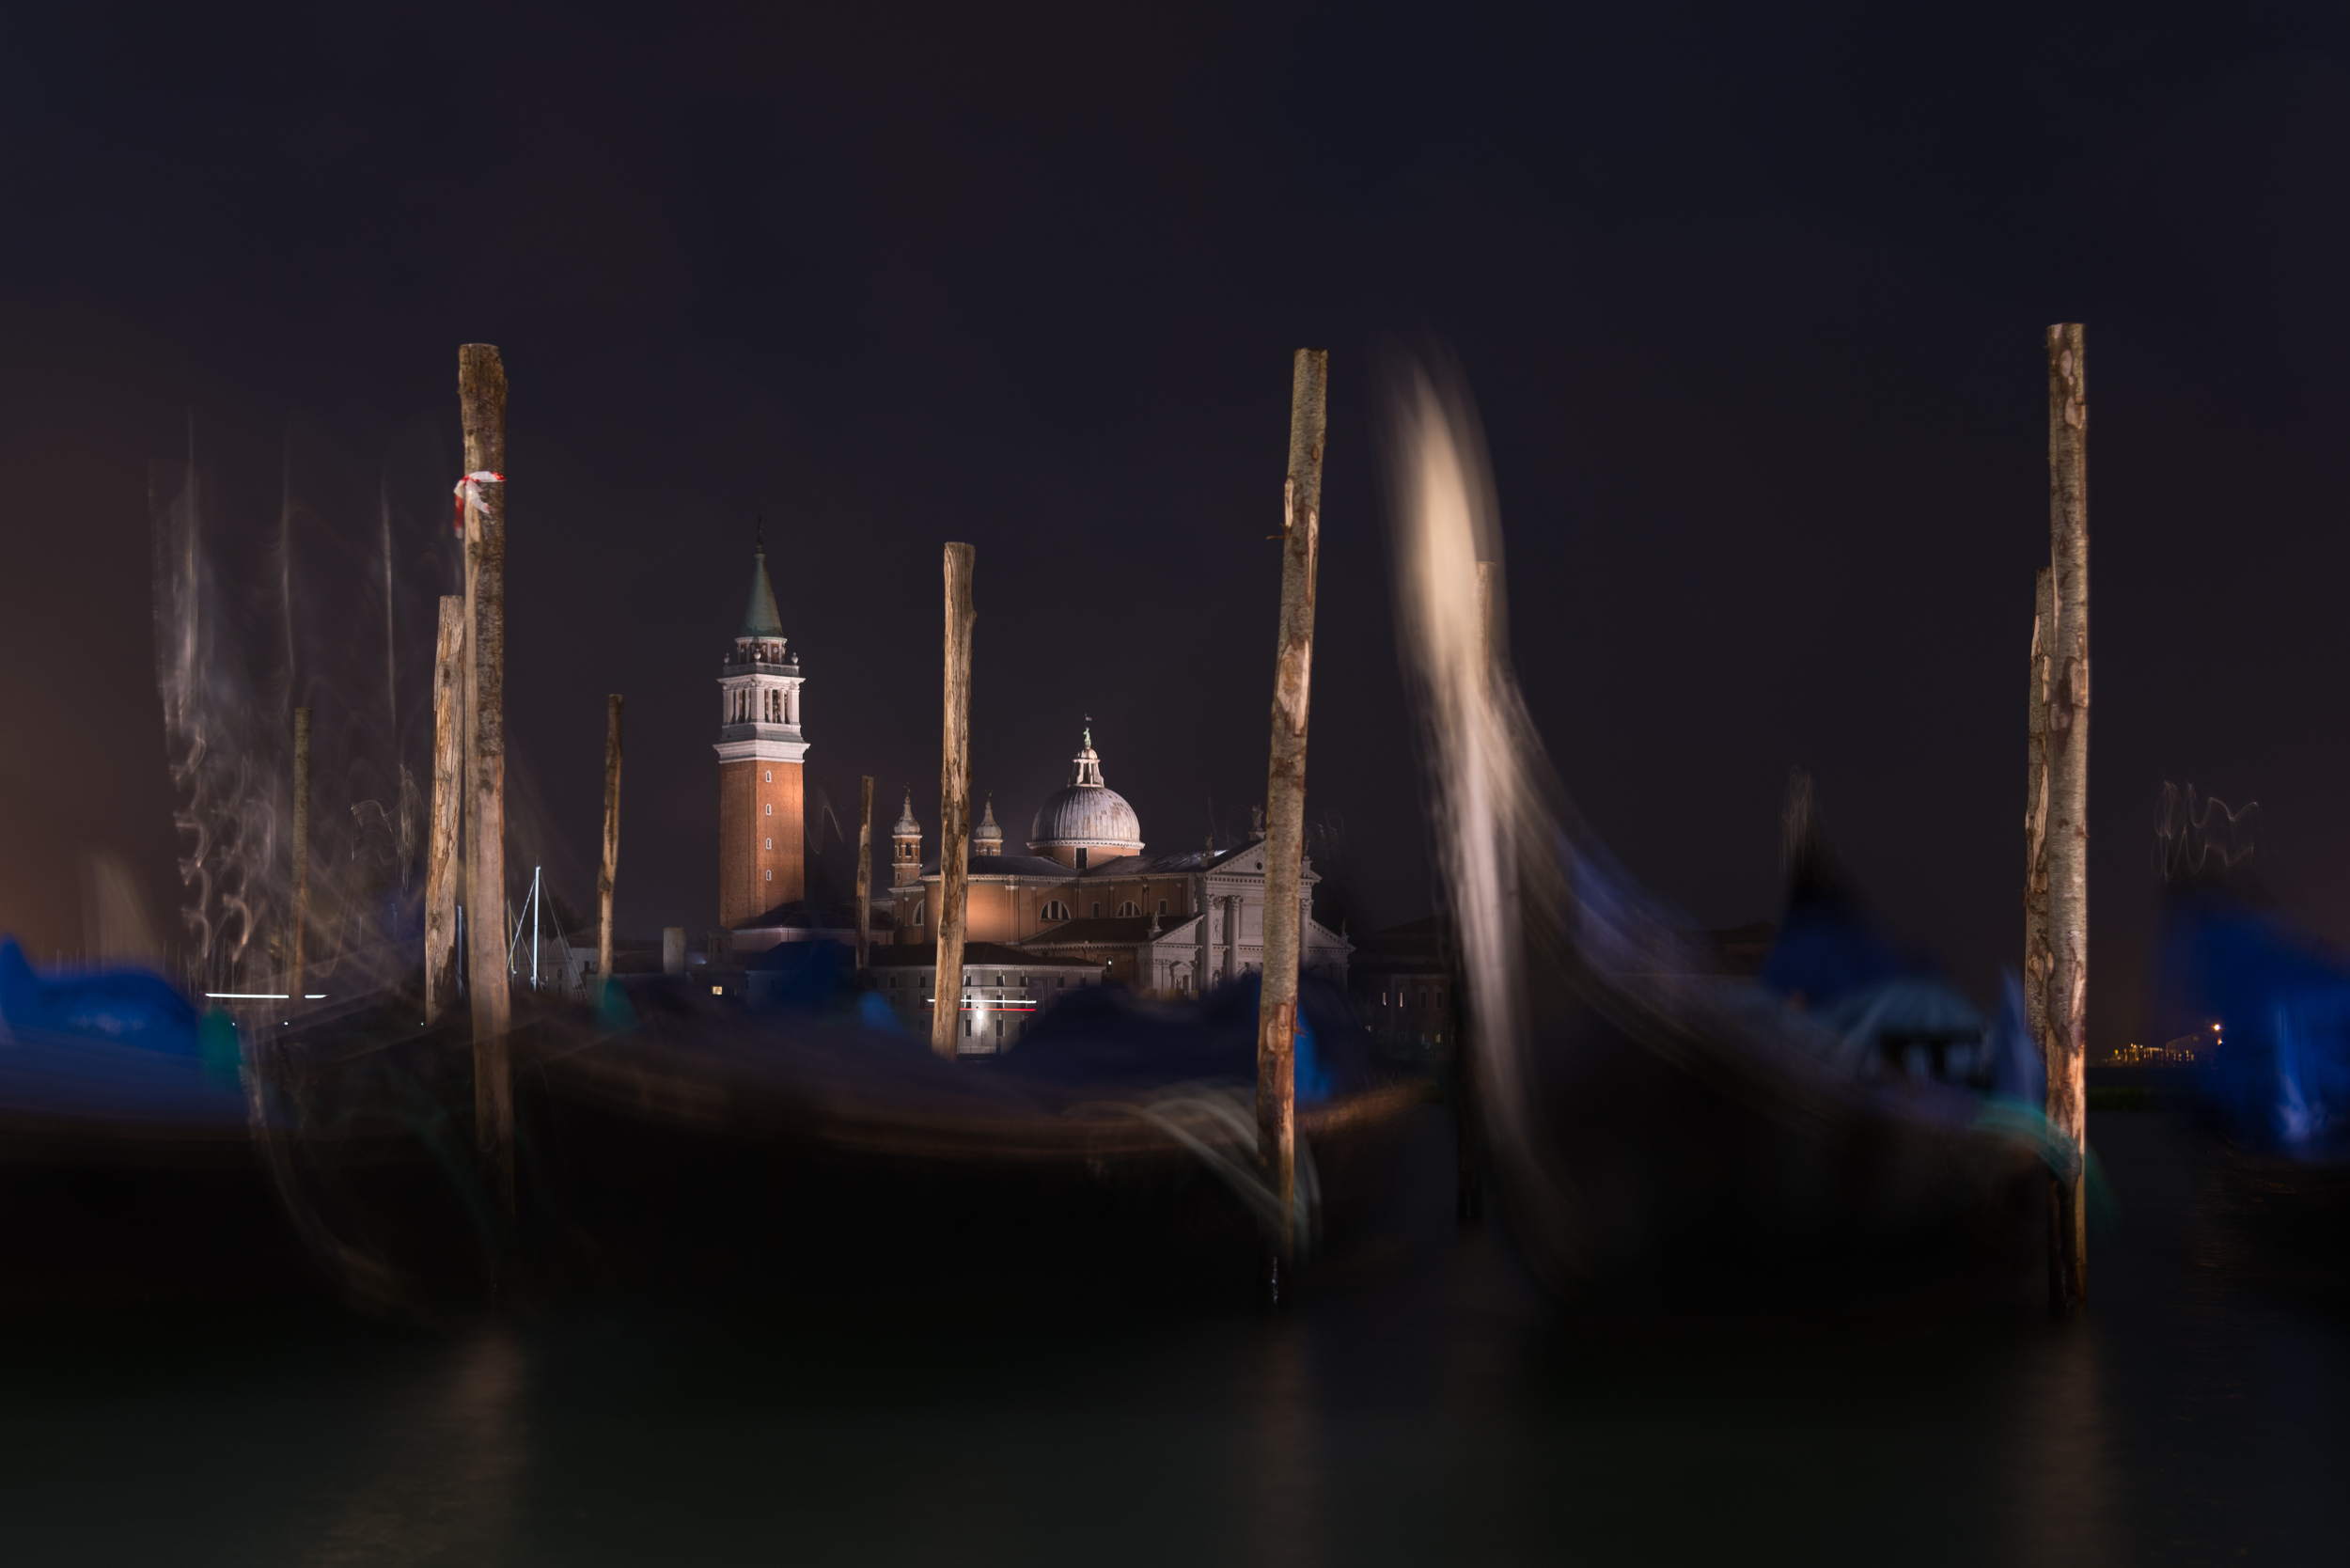 Night The Grand Canal, Venice